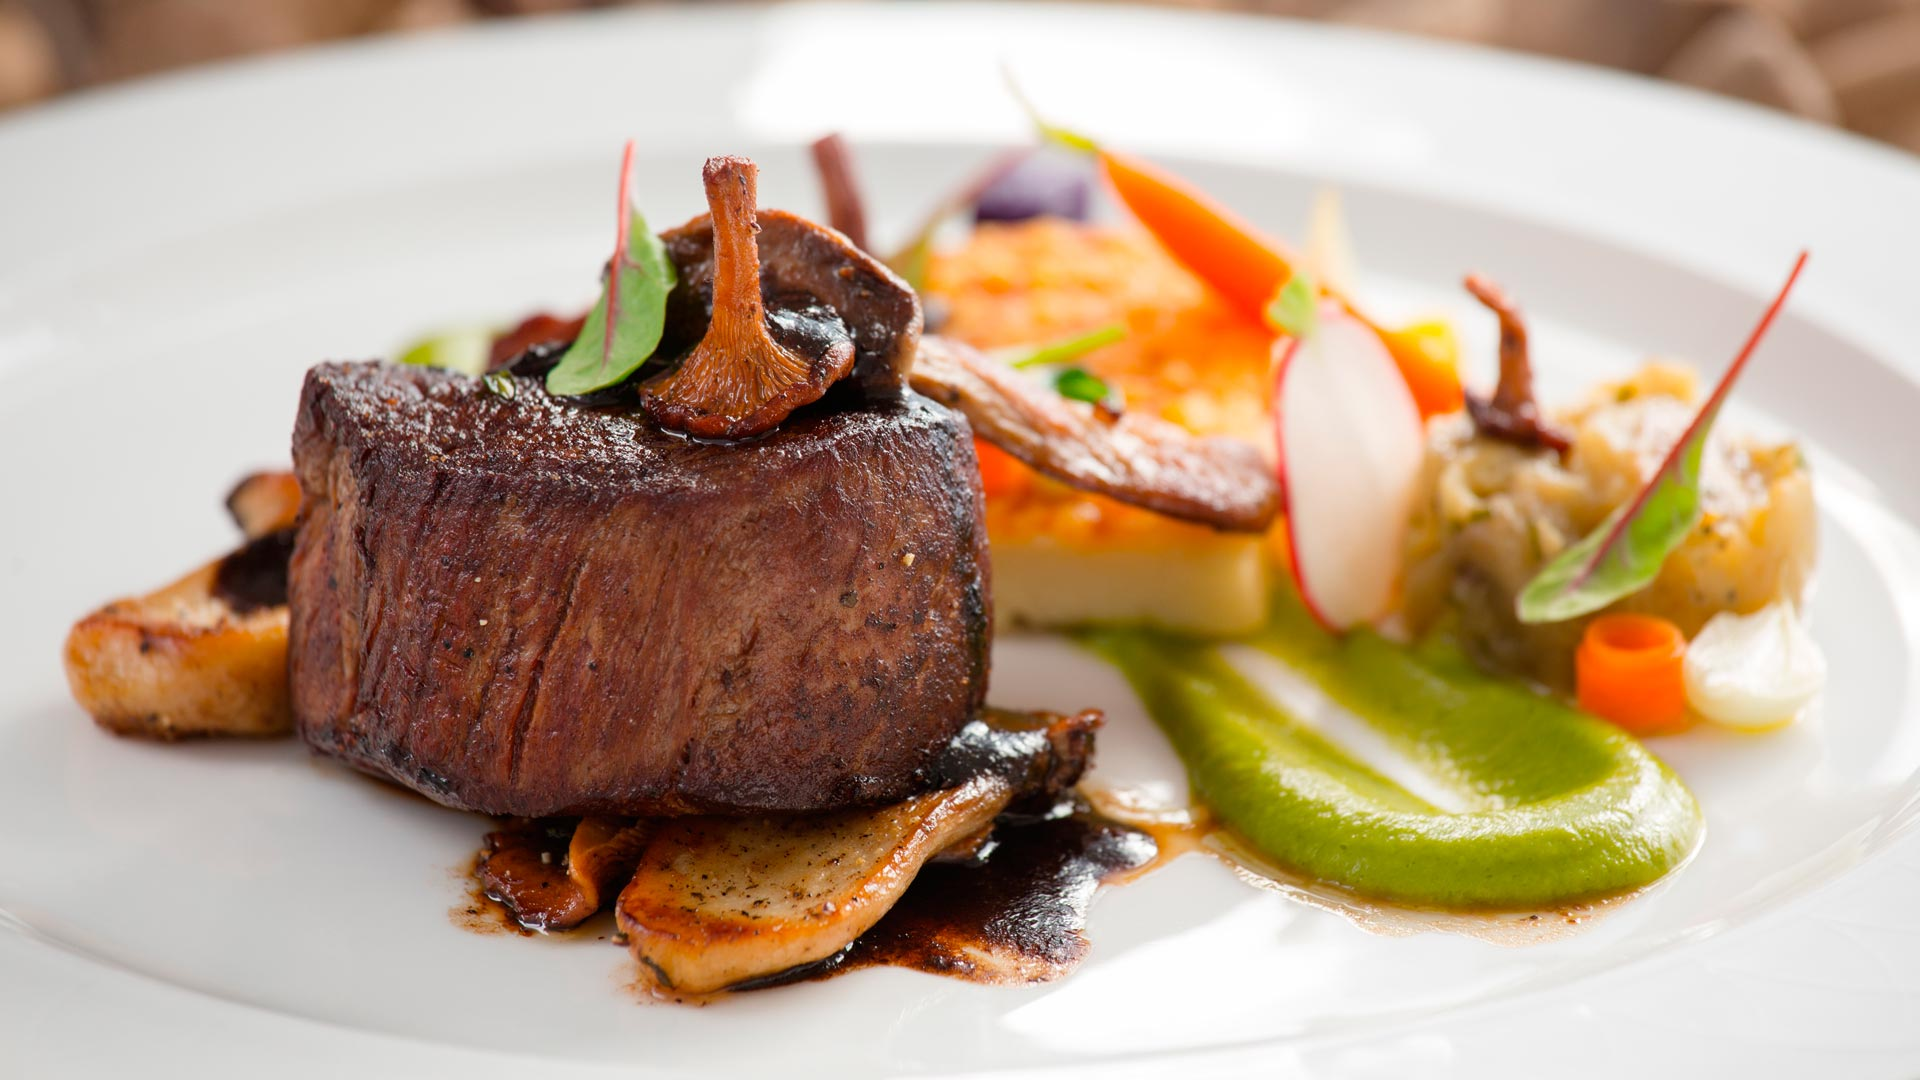 Restaurant quality food in the comfort of your chalet.